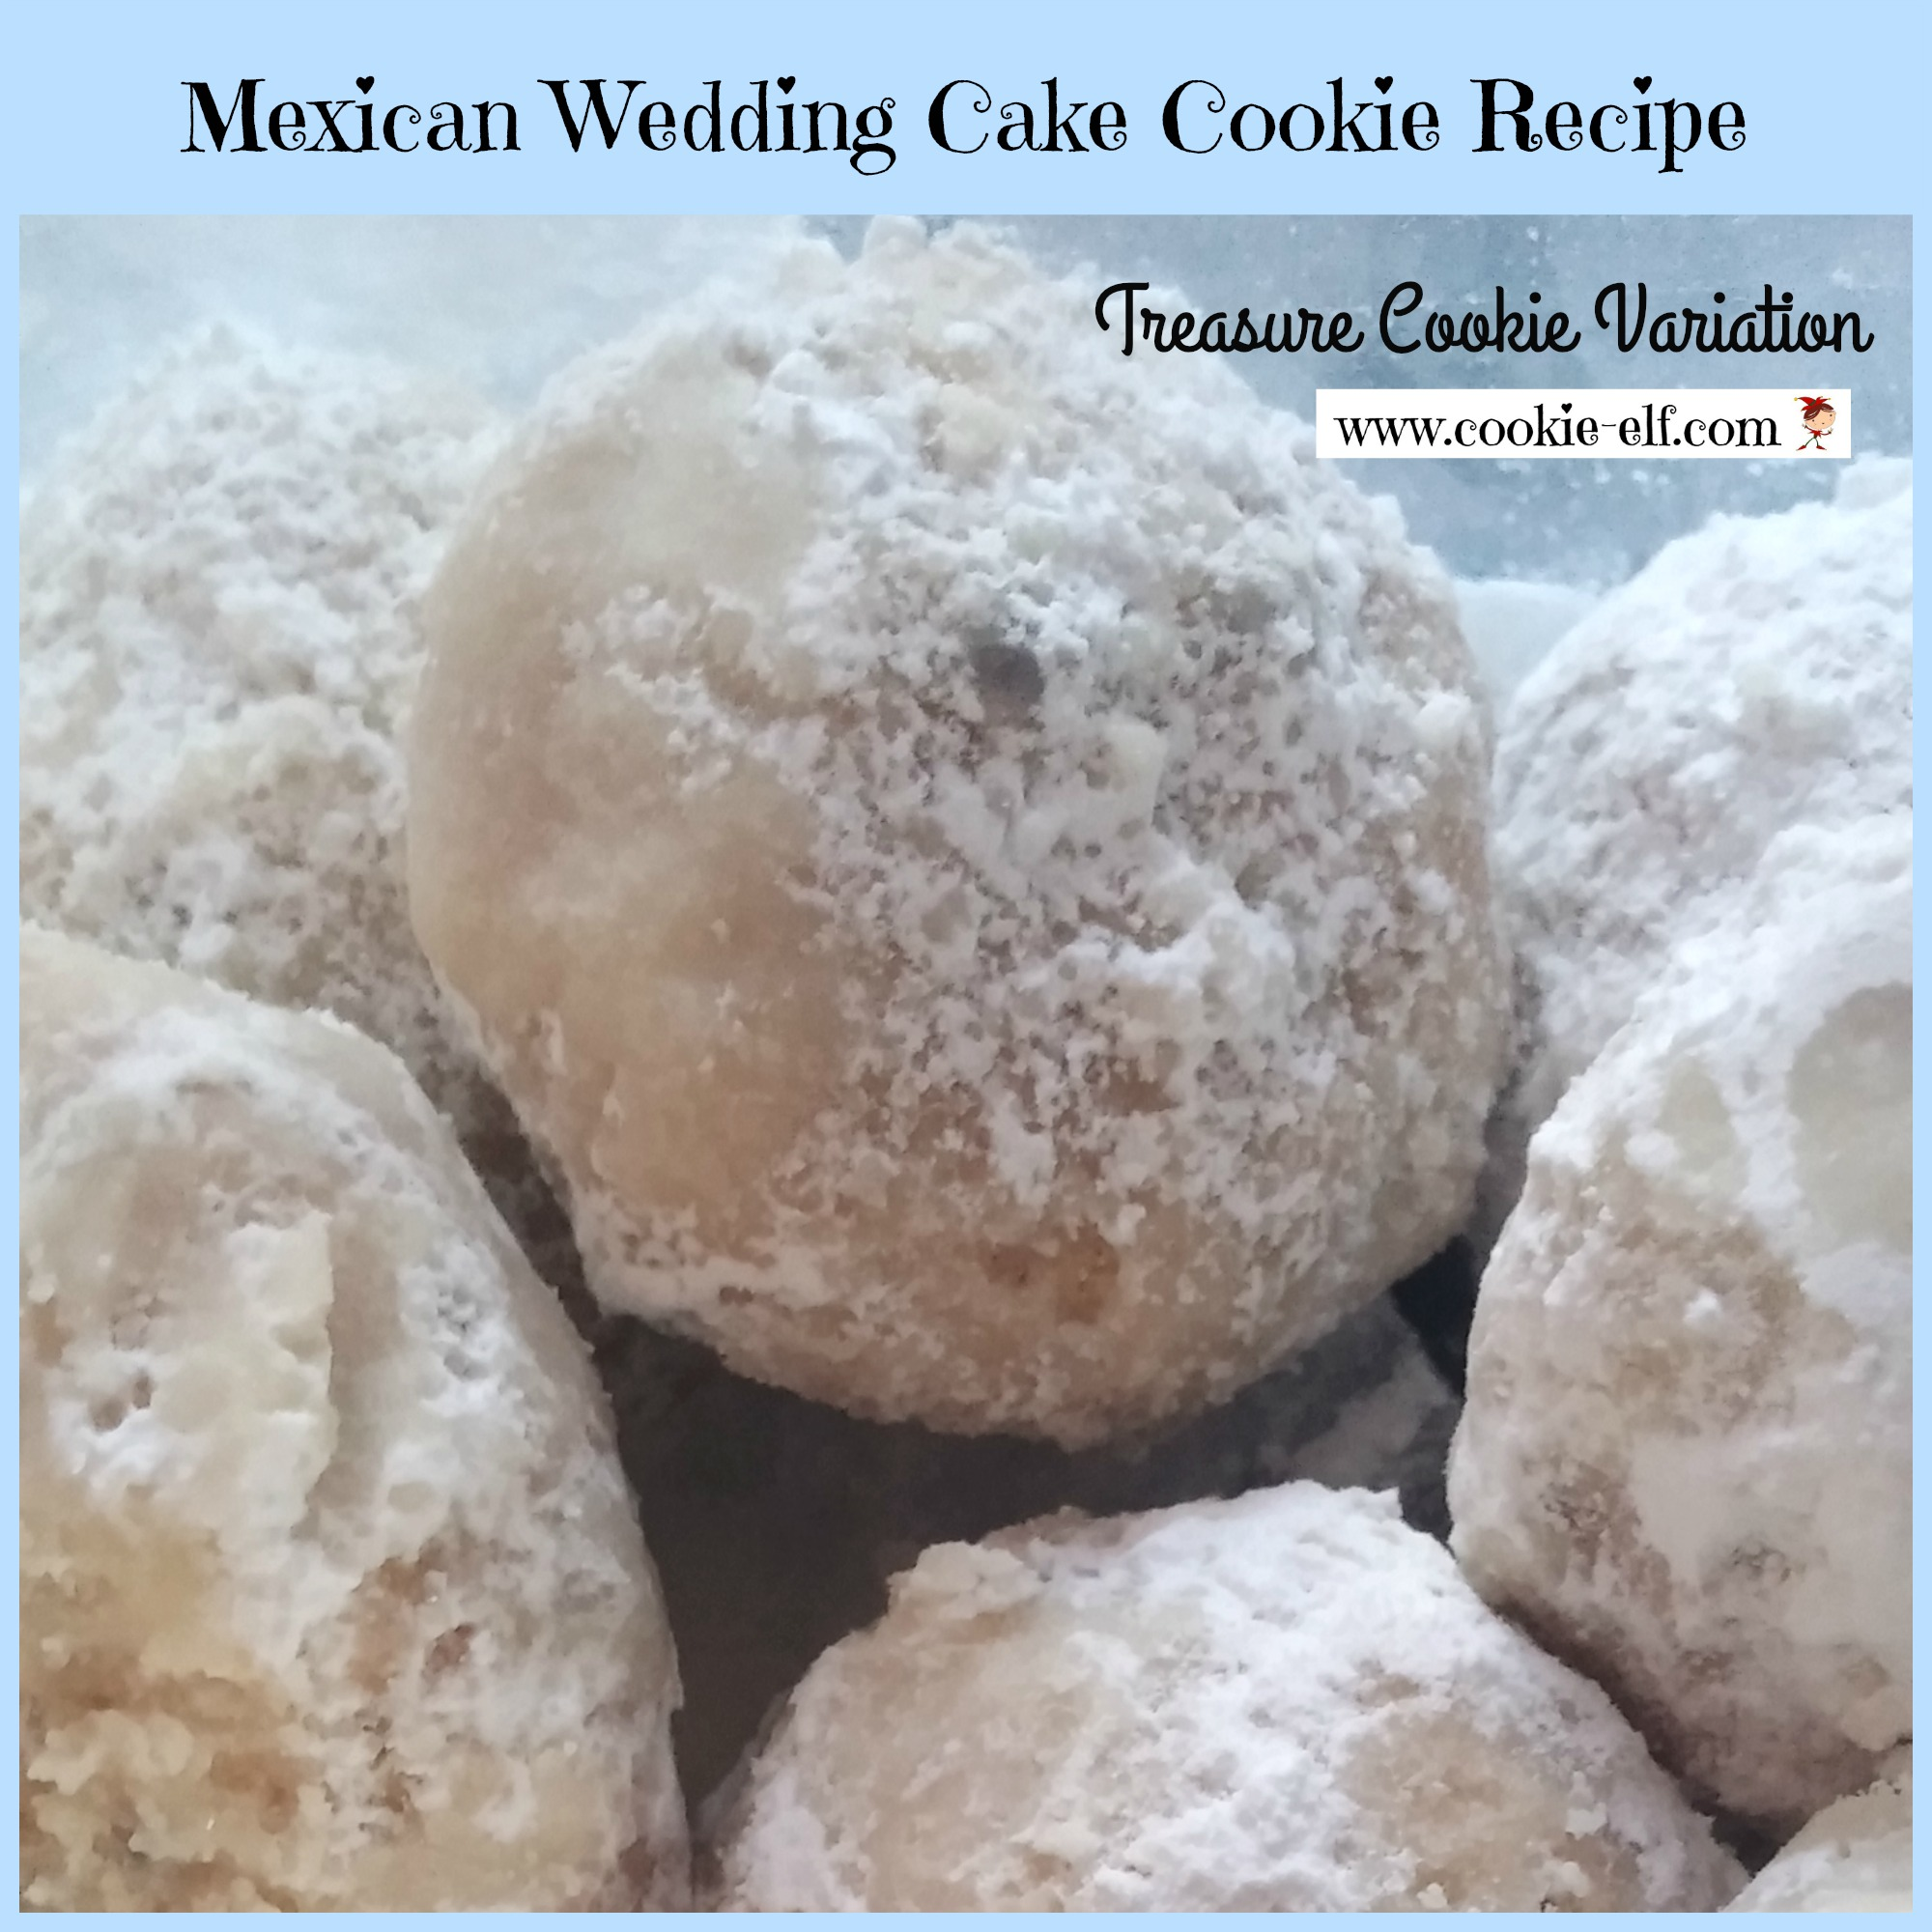 Mexican Wedding Cake Cookie Recipe: Treasure Cookies variation from The Cookie Elf